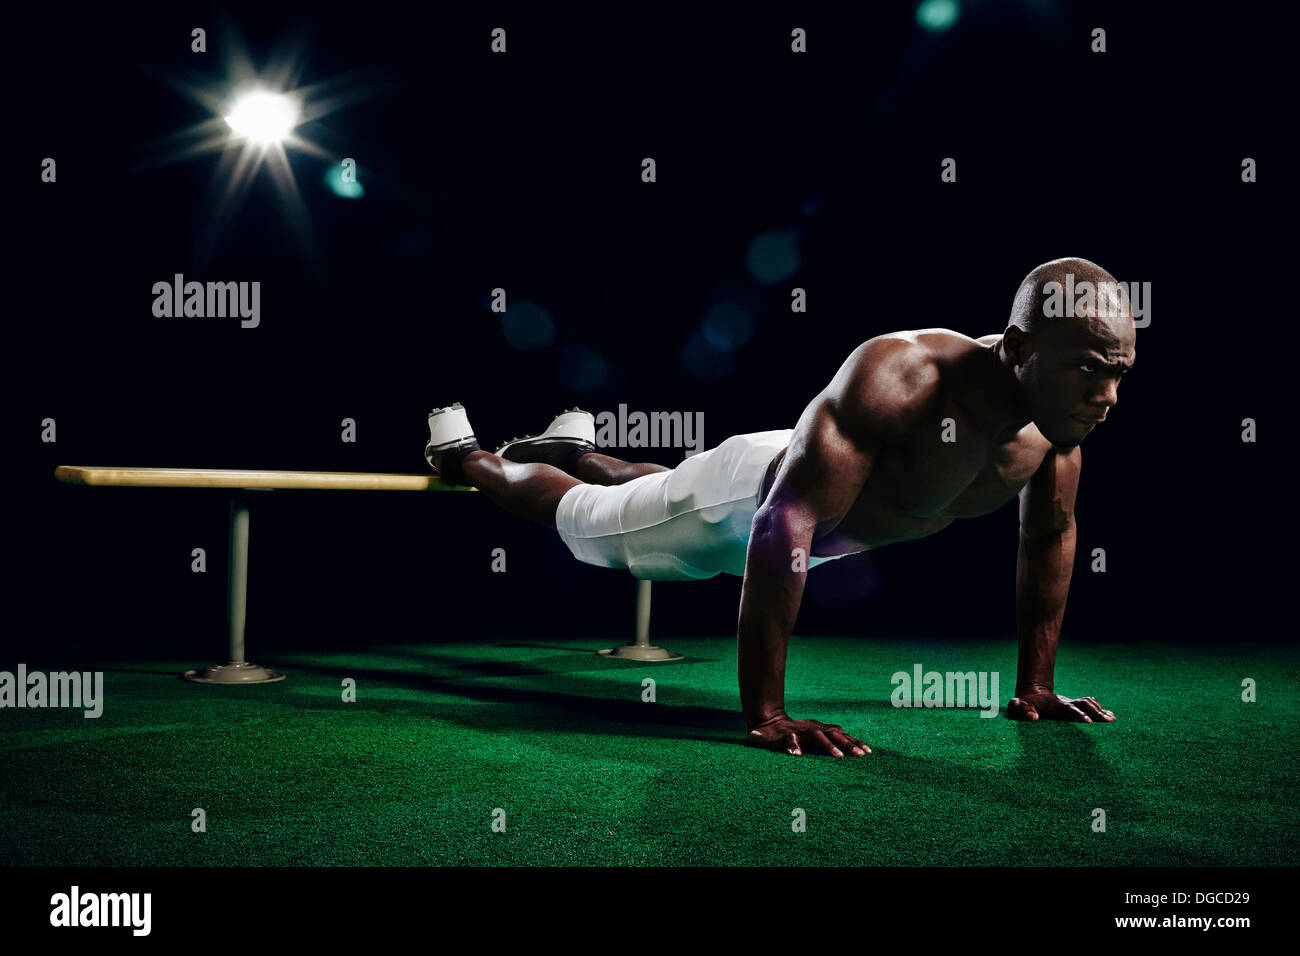 Footballeur américain torse nu faisant press ups Photo Stock